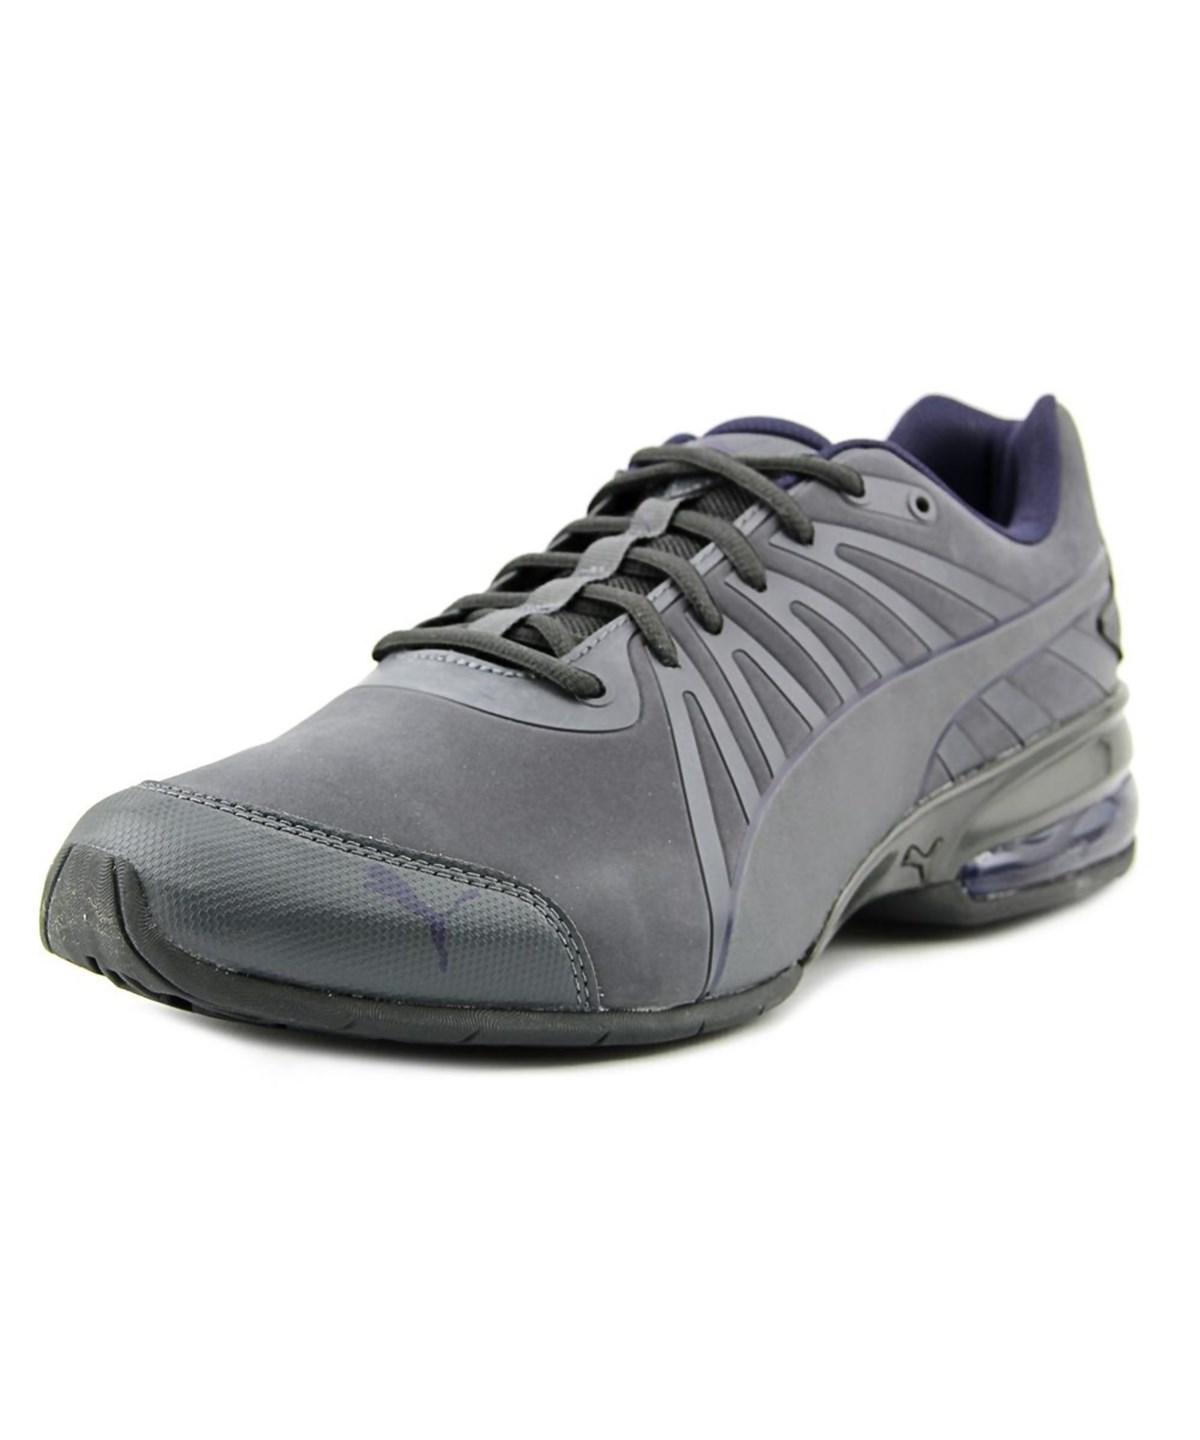 Puma Cell Kilter Men Round Toe Leather Gray Sneakers  In Grey  7f82ca0d7